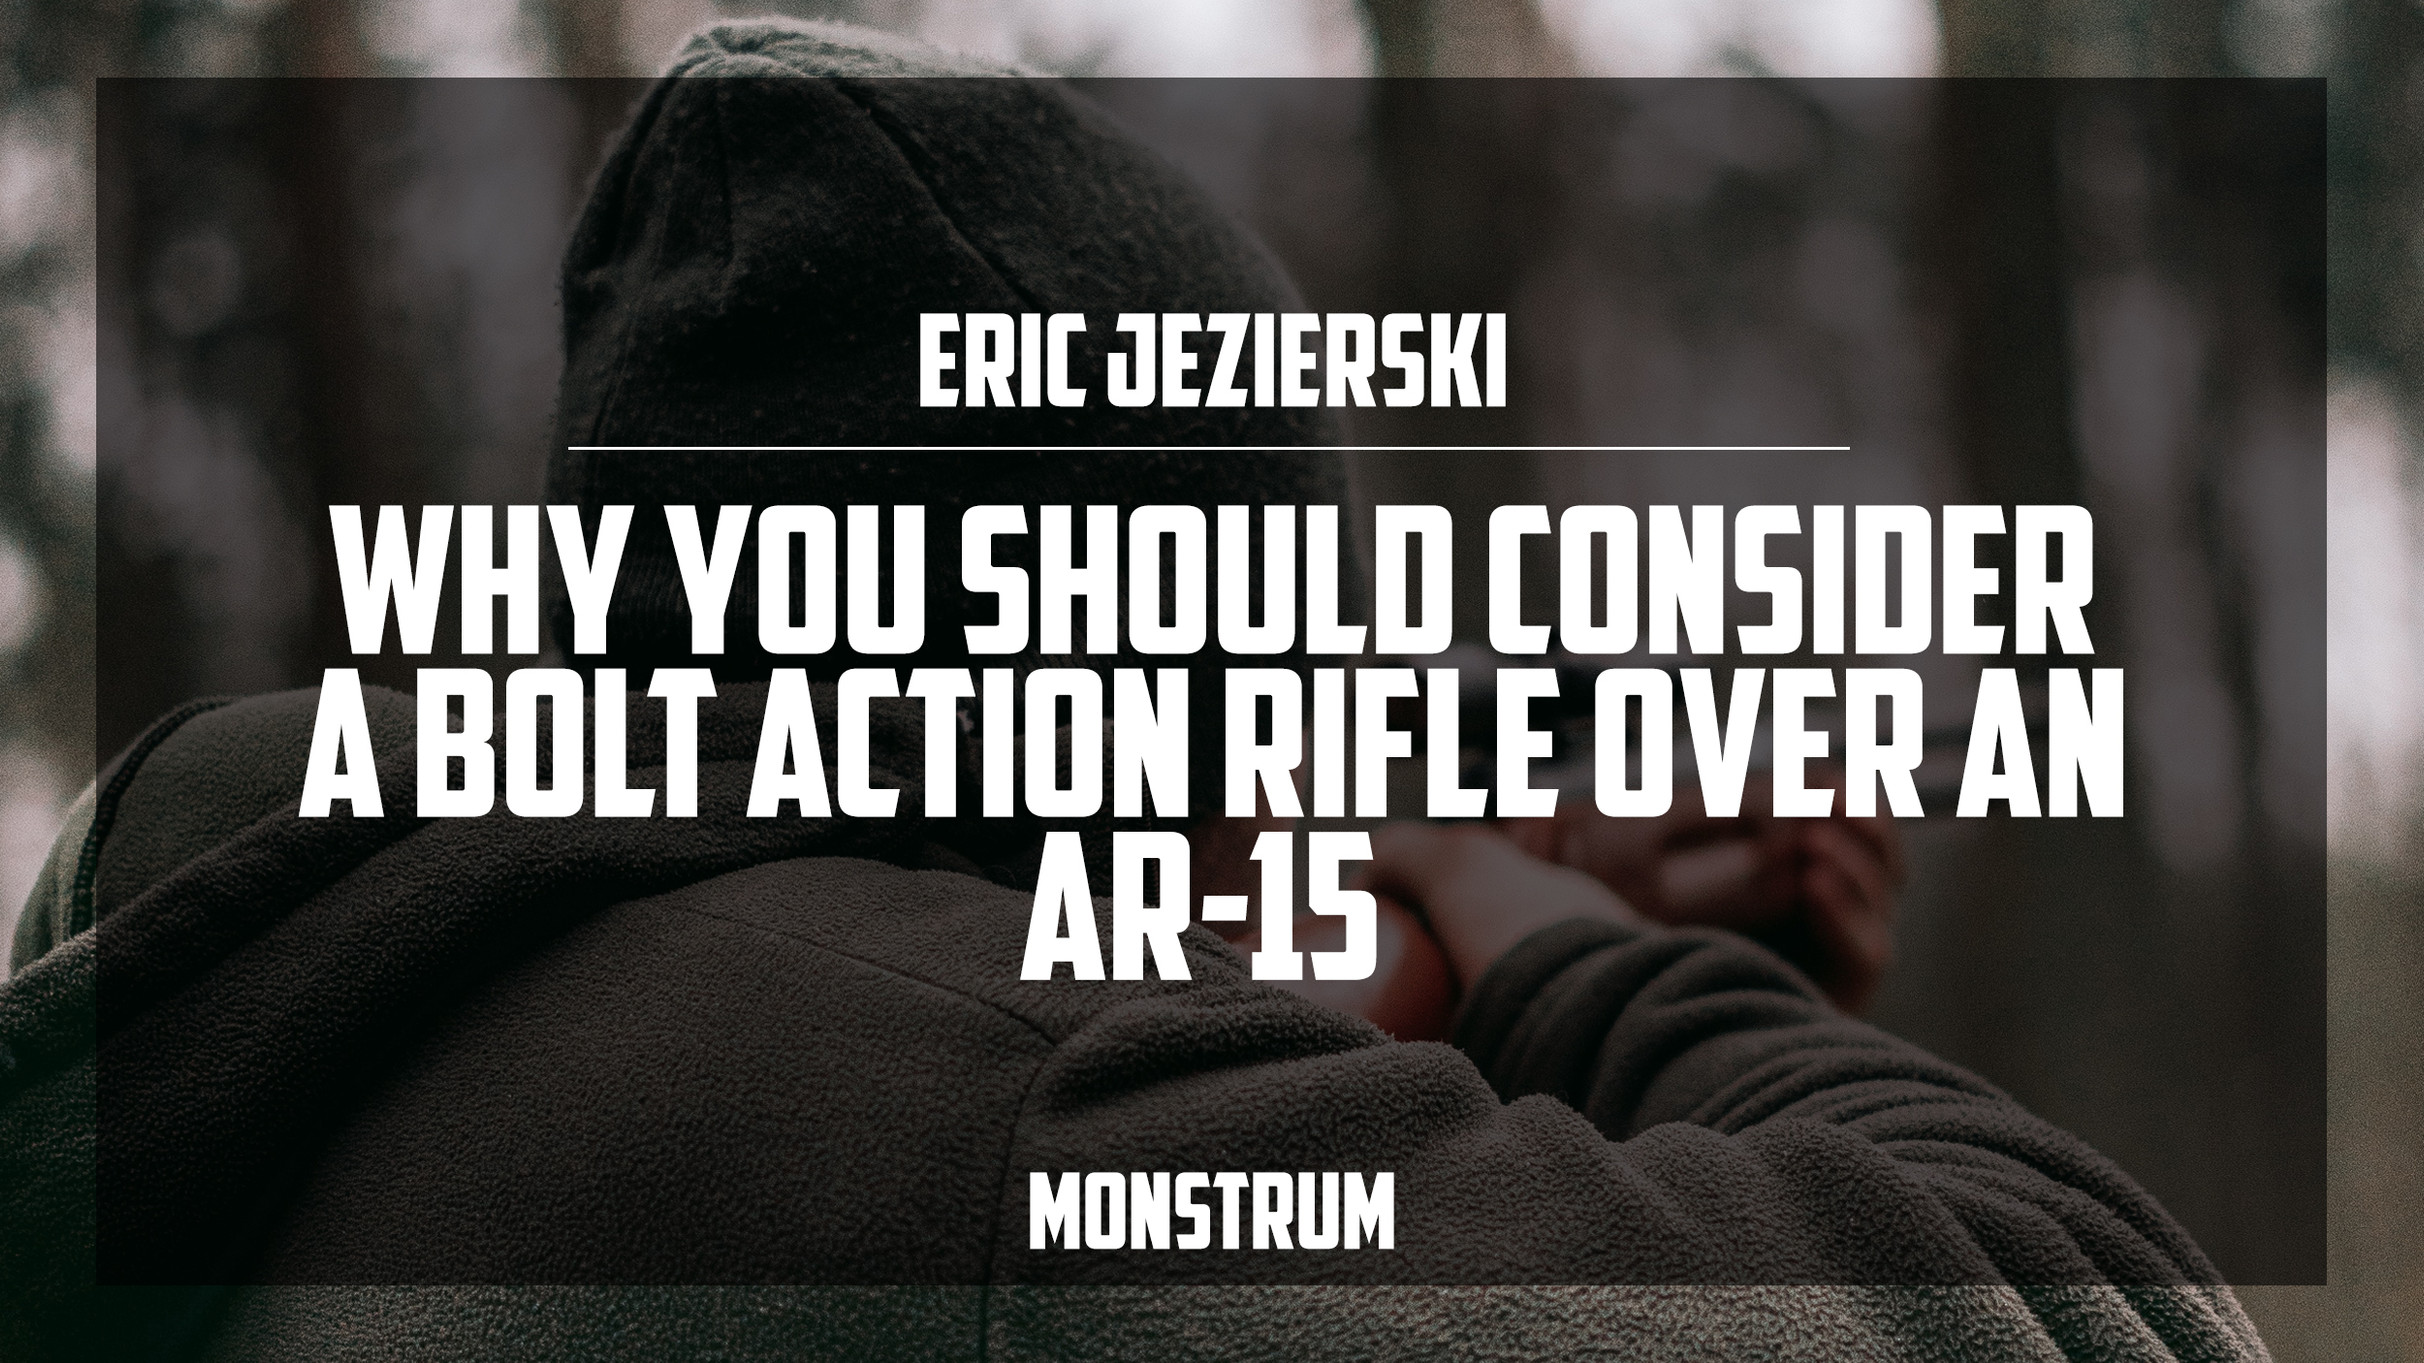 Why You Should Consider a Bolt Action Rifle Over an AR-15